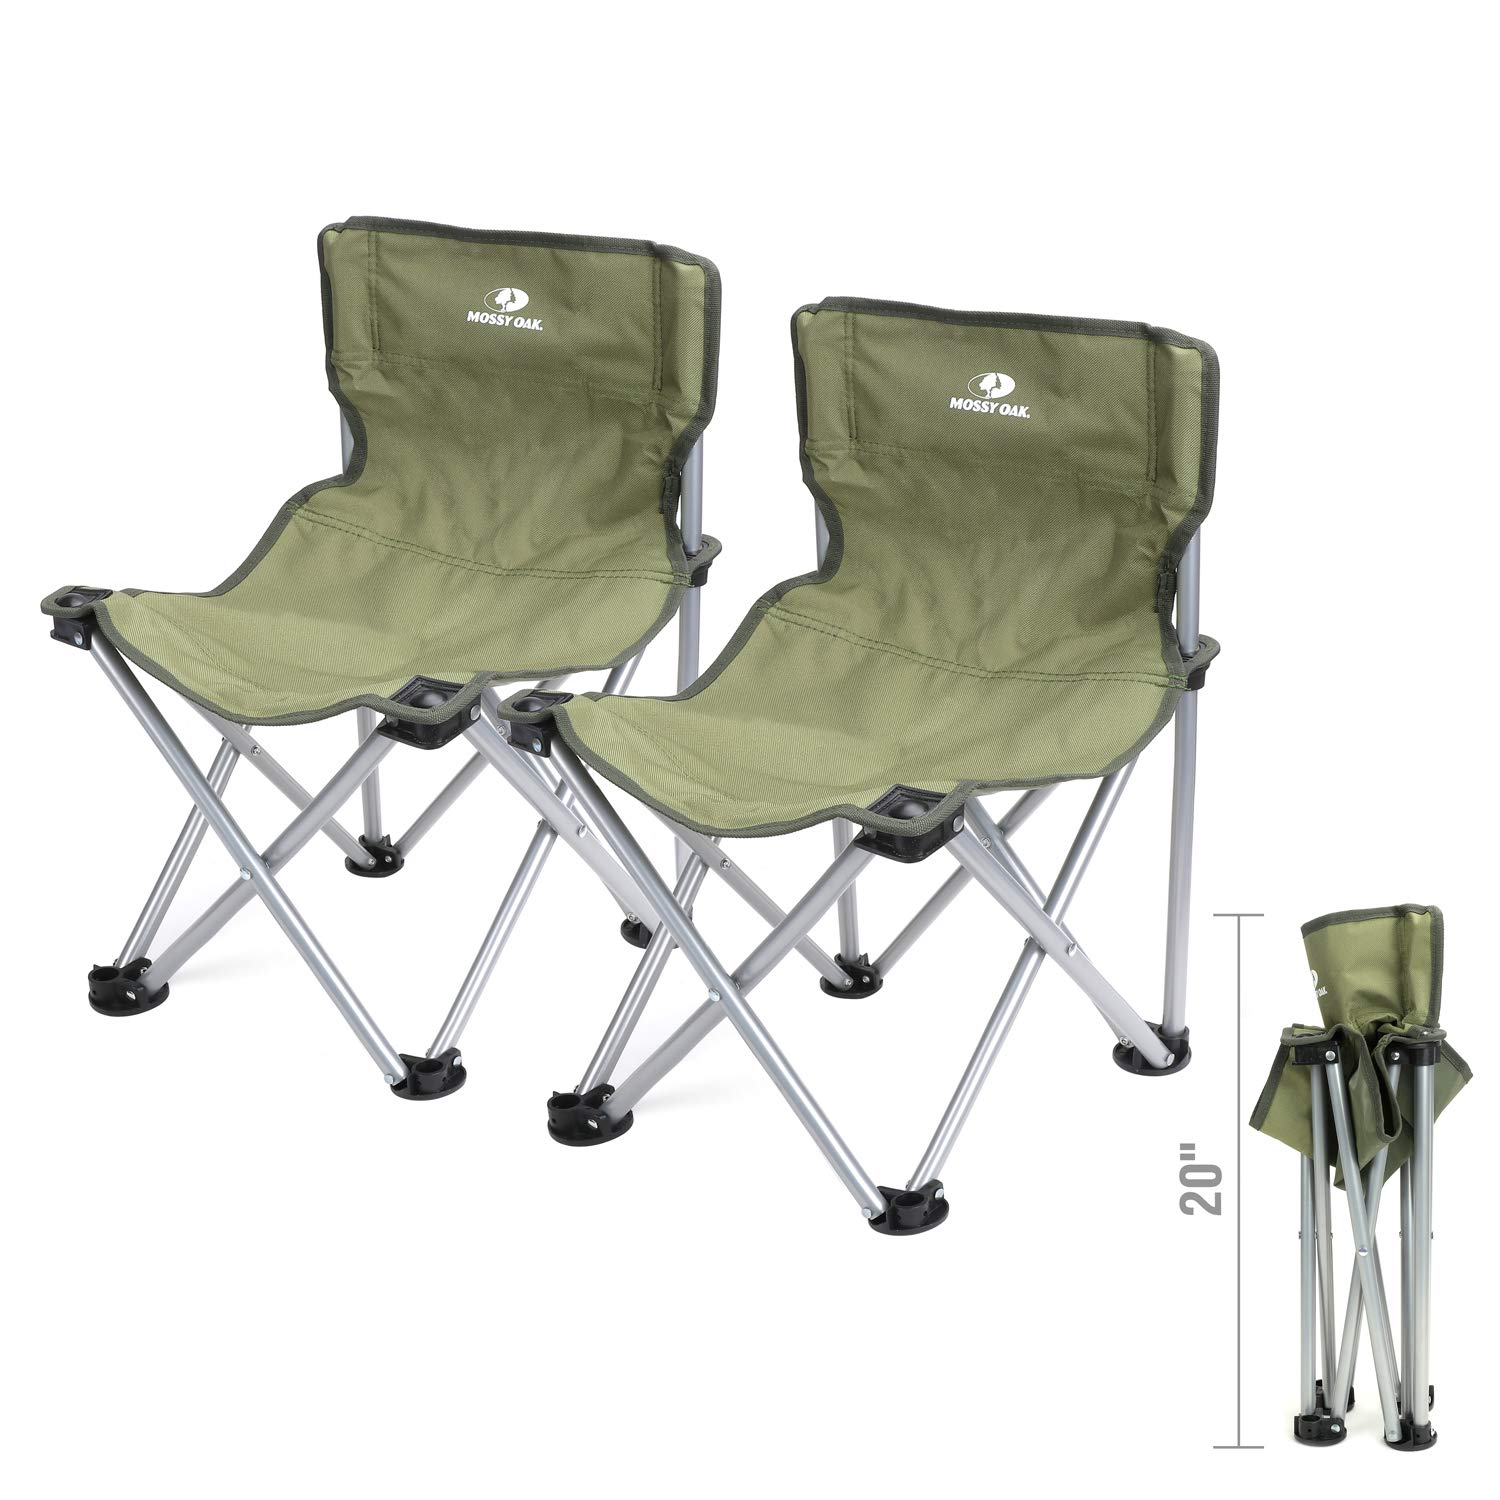 MOSSY OAK Folding Stool Mini with Backrest Portable Lightweight Camping Chair with Carry Bag, 2-Piece, Max Load 220 Lbs, 20.5 x 14 x 13 inch by Mossy Oak